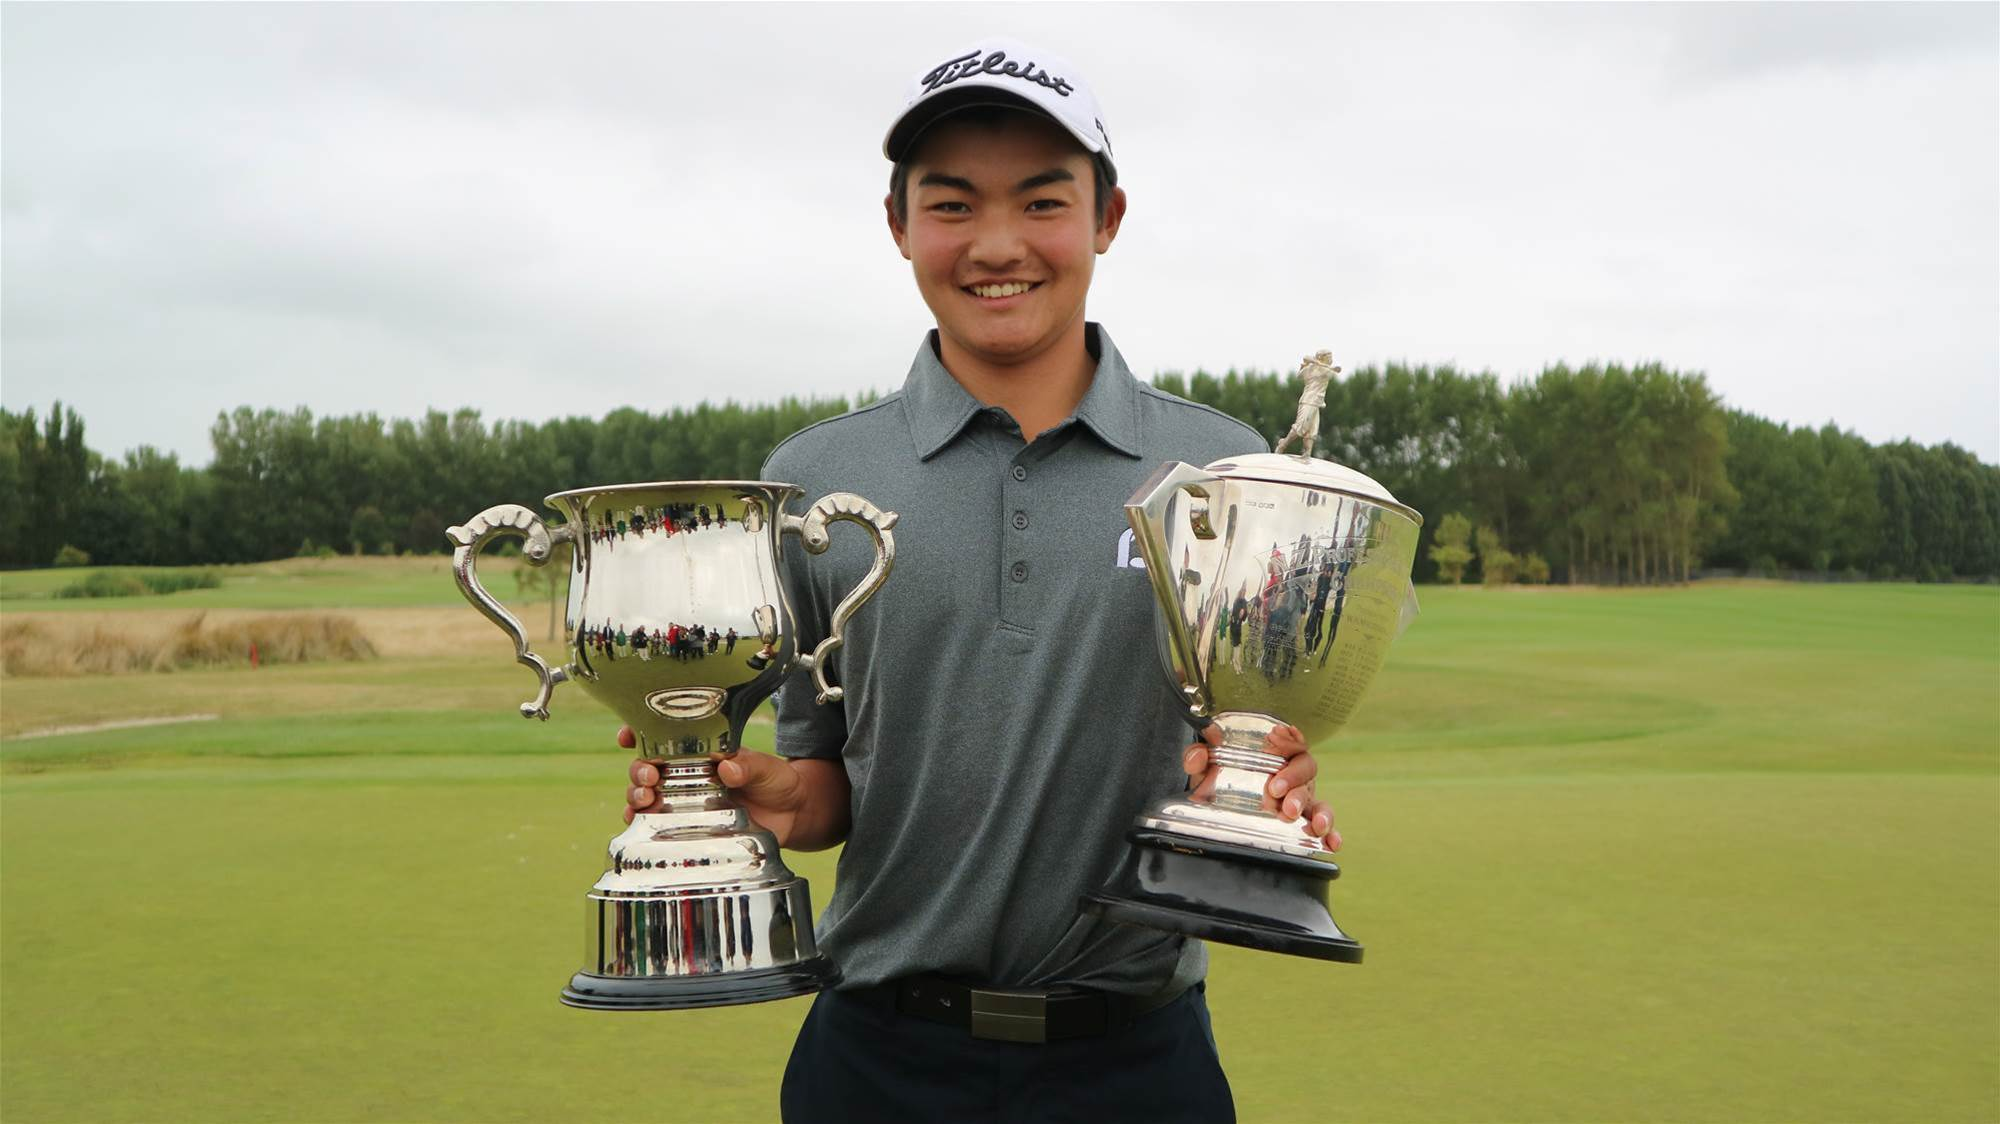 Amateur Kobori wins the NZ PGA Championship